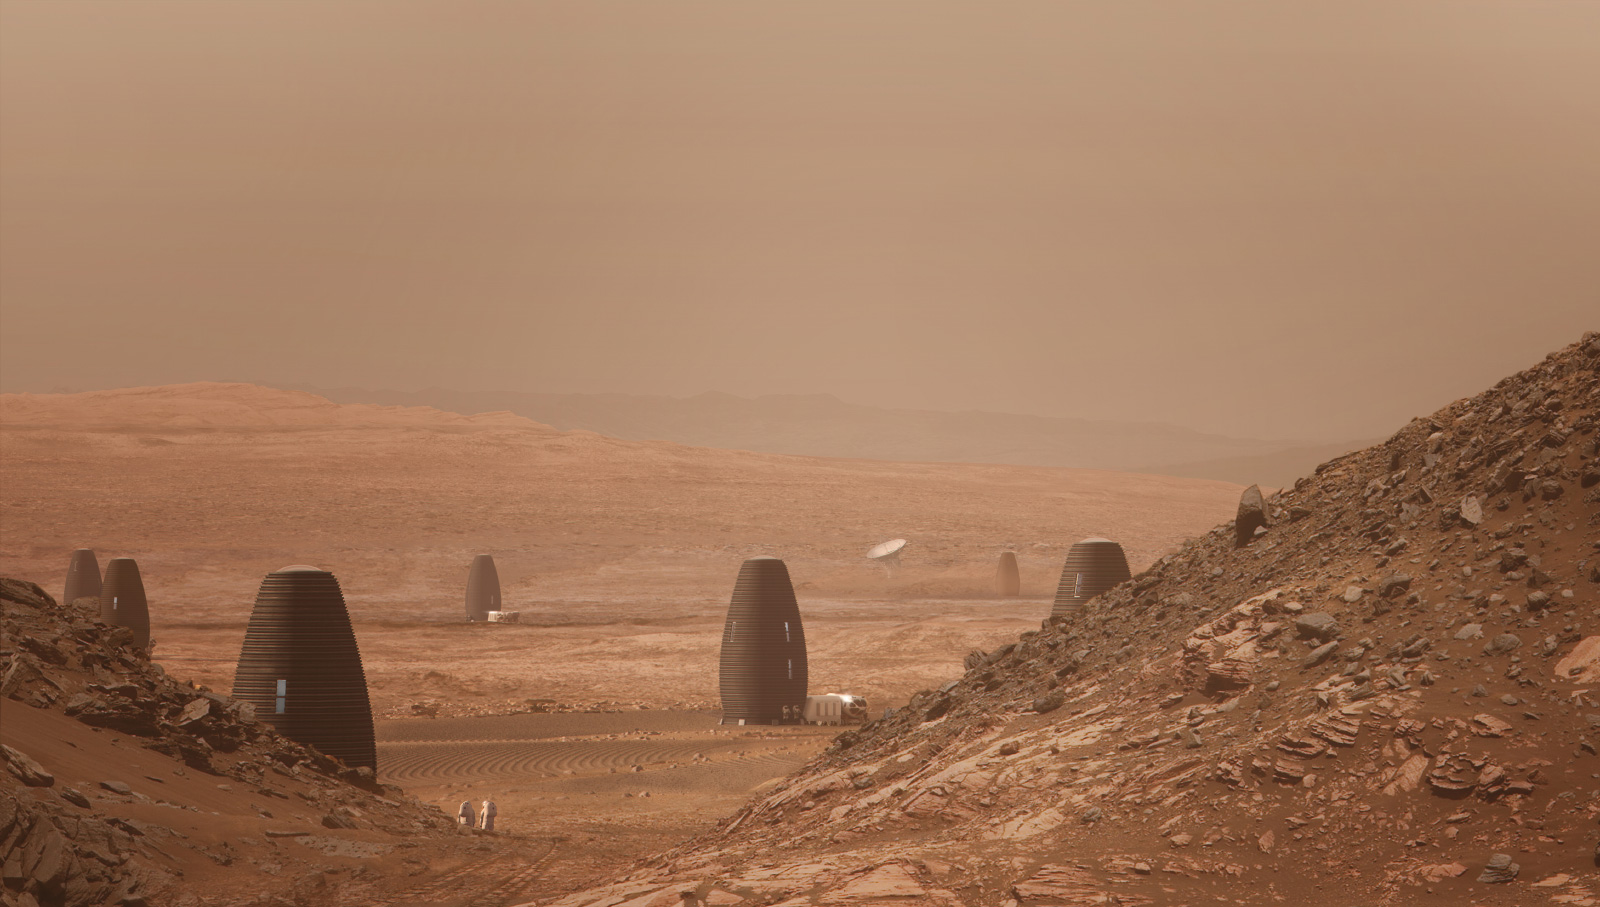 Several hive-shaped structures on the Martian surface, an example of space design